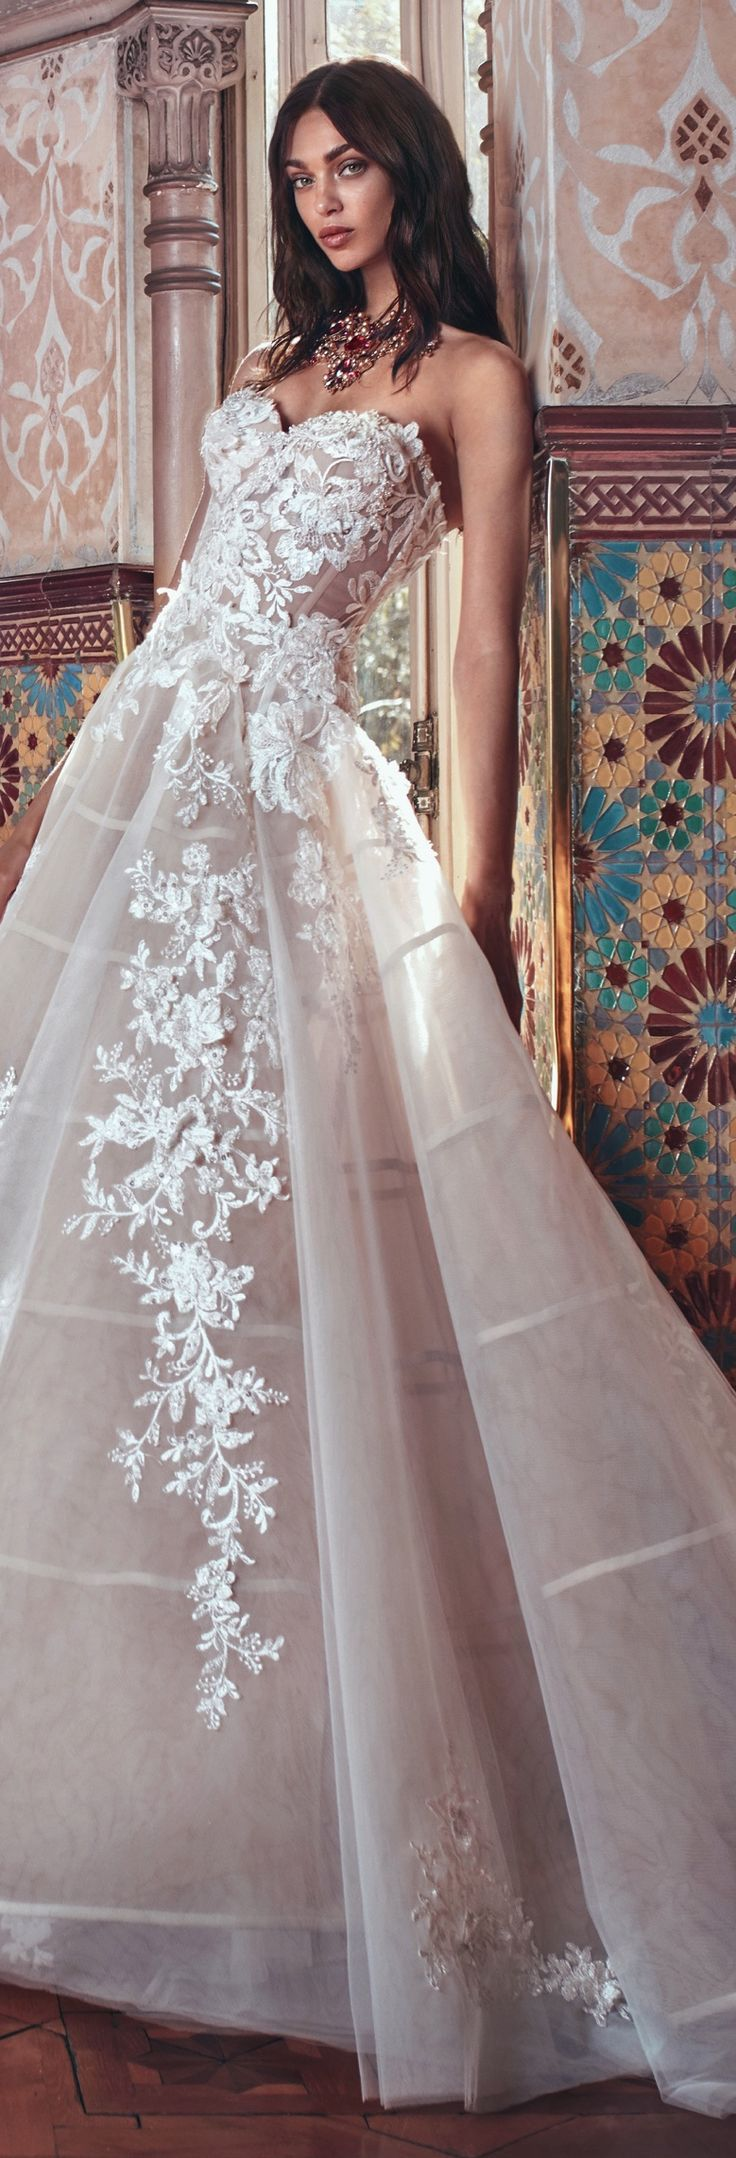 See through corset wedding dresses  A Victorian twopiece full princess ball gown with a dramatic see